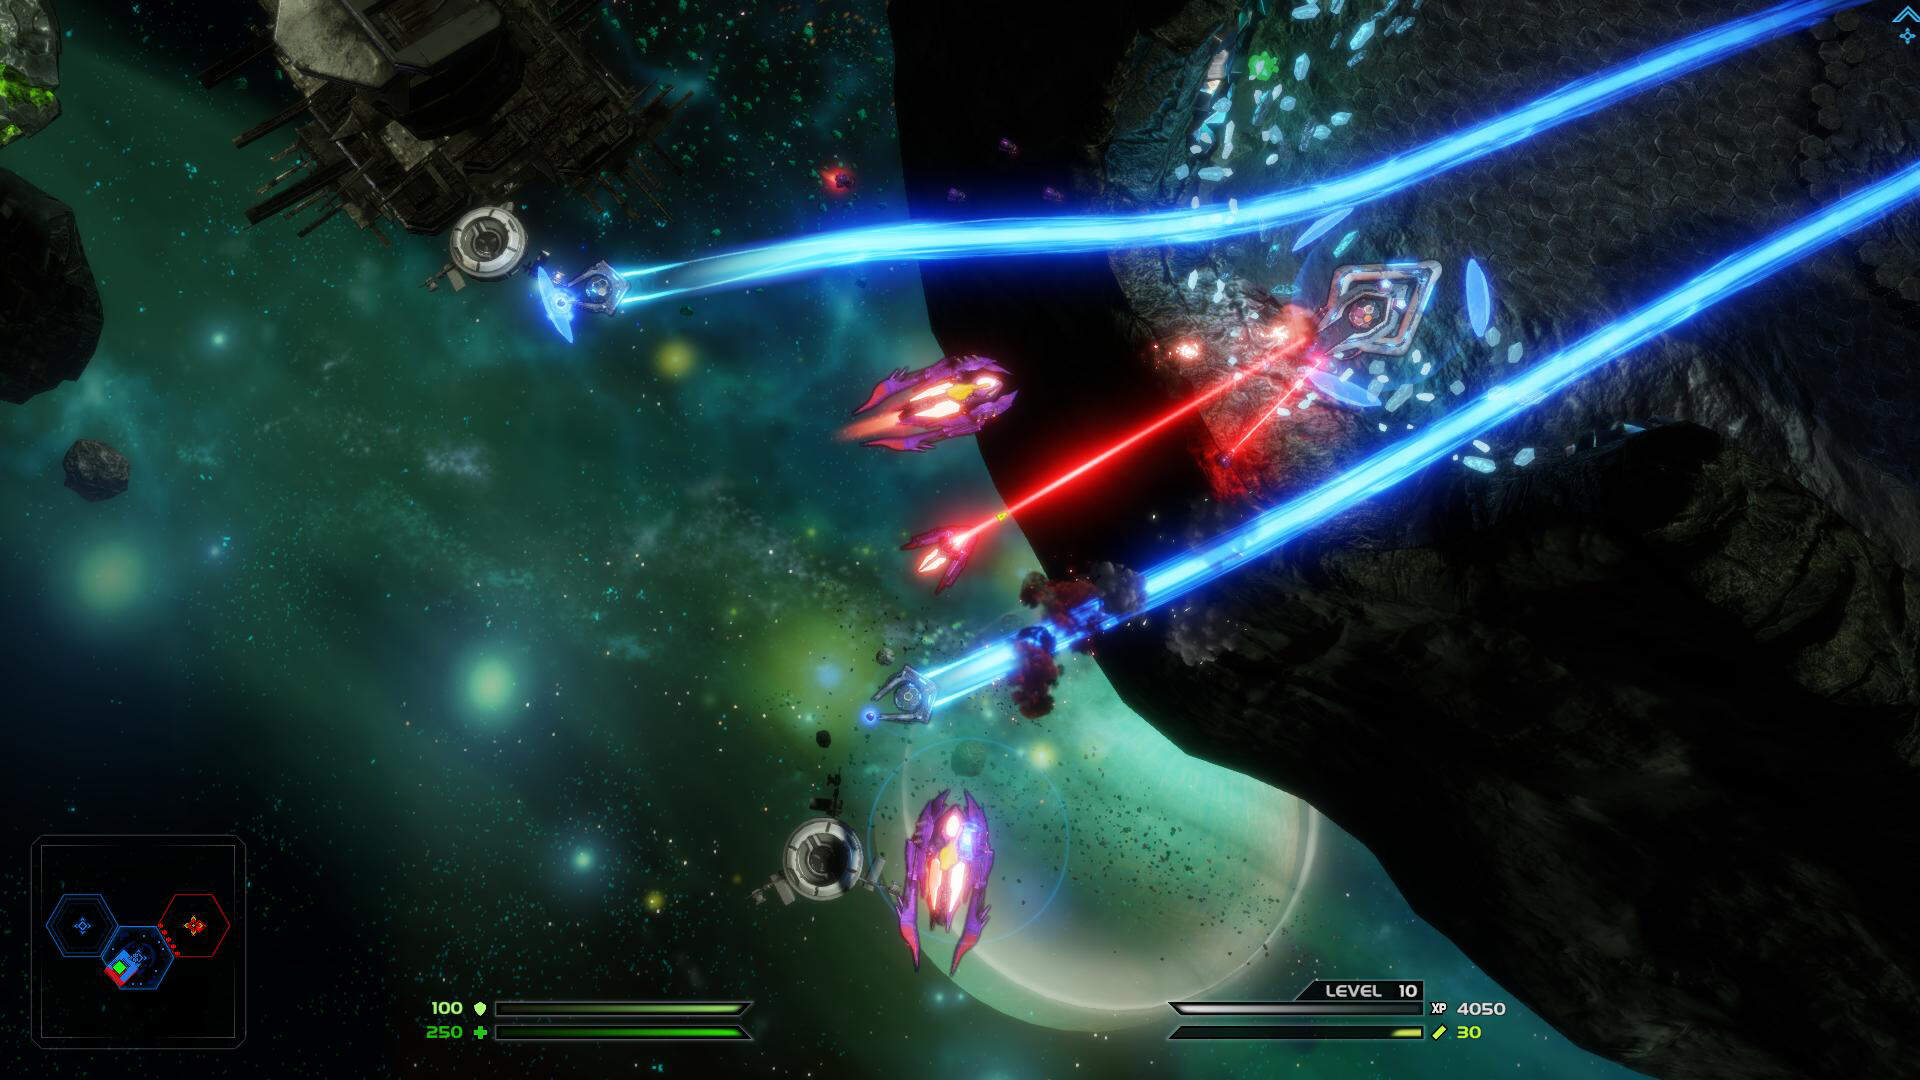 Dead Star PC/PS4 Preview: Star Control Meets SubSpace